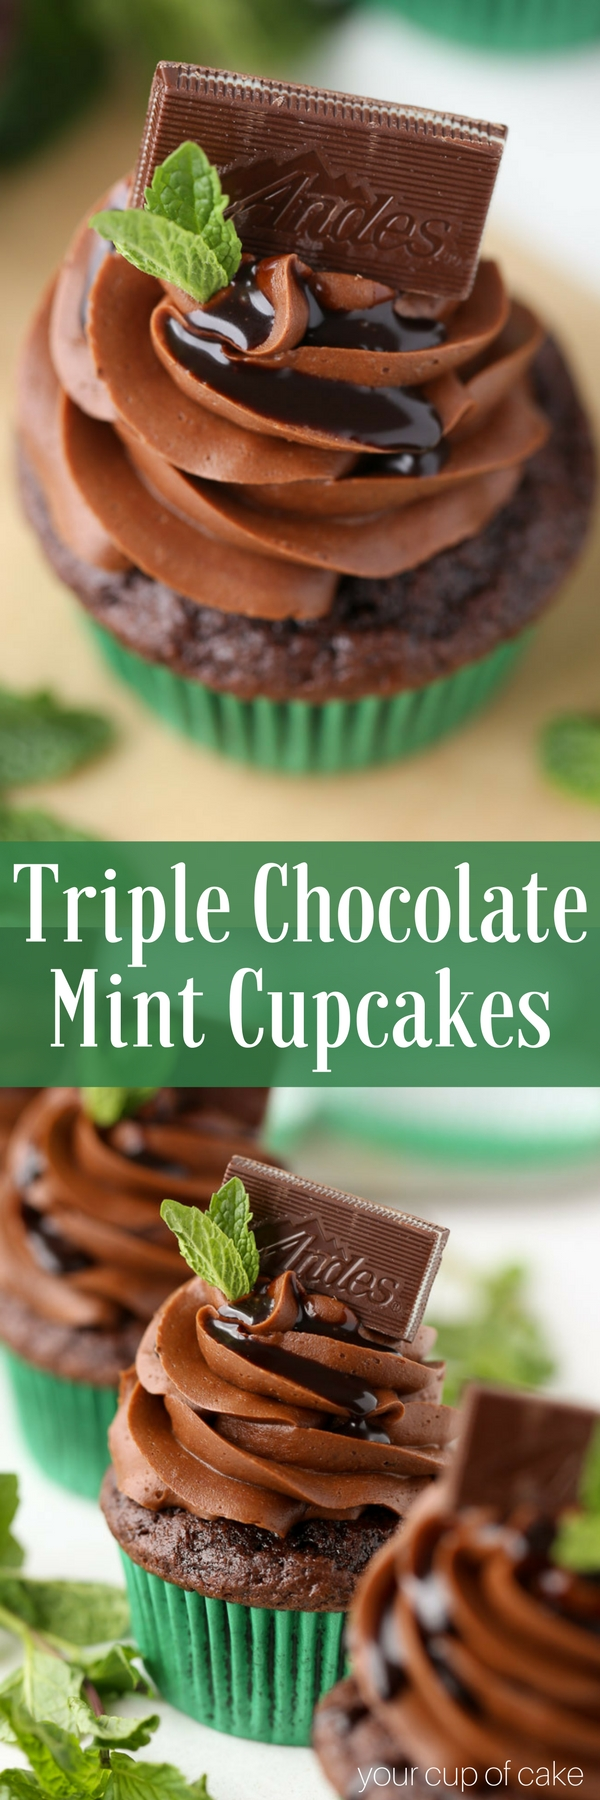 Triple Chocolate Mint Cupcakes with Andes Mints! This recipe is super easy and quick to make!